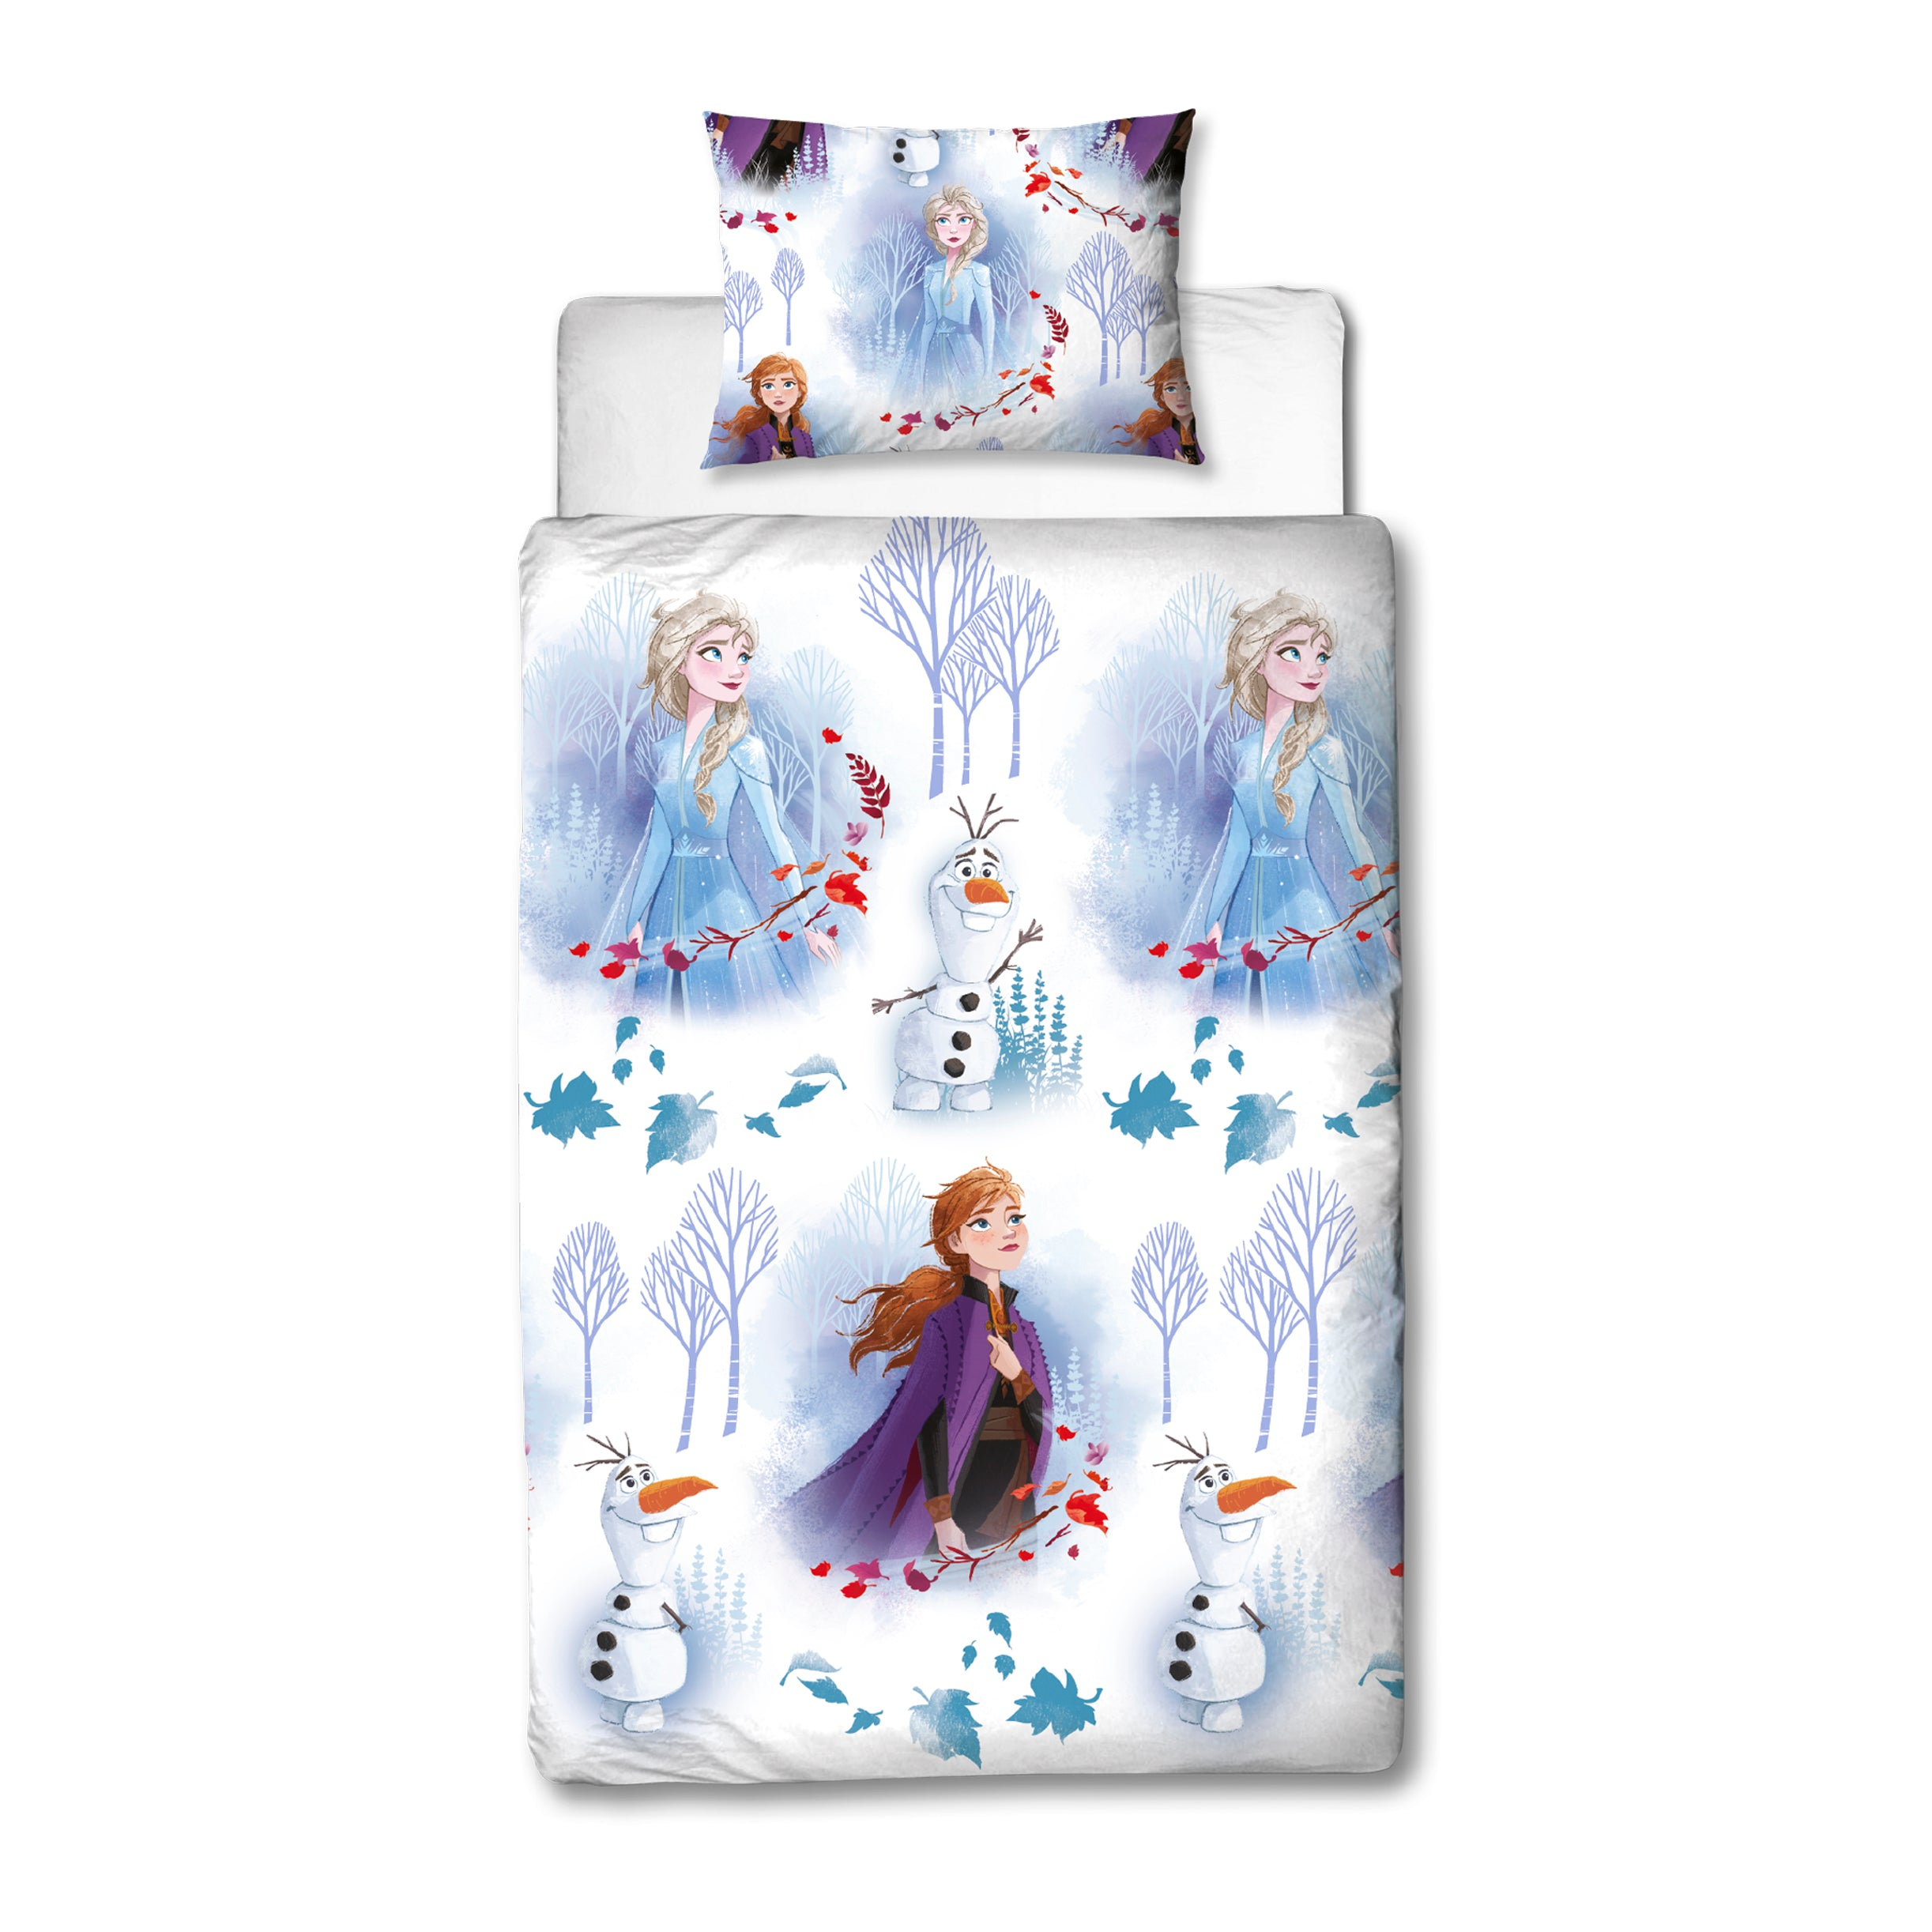 Frozen 2 Licensed Bed Covers